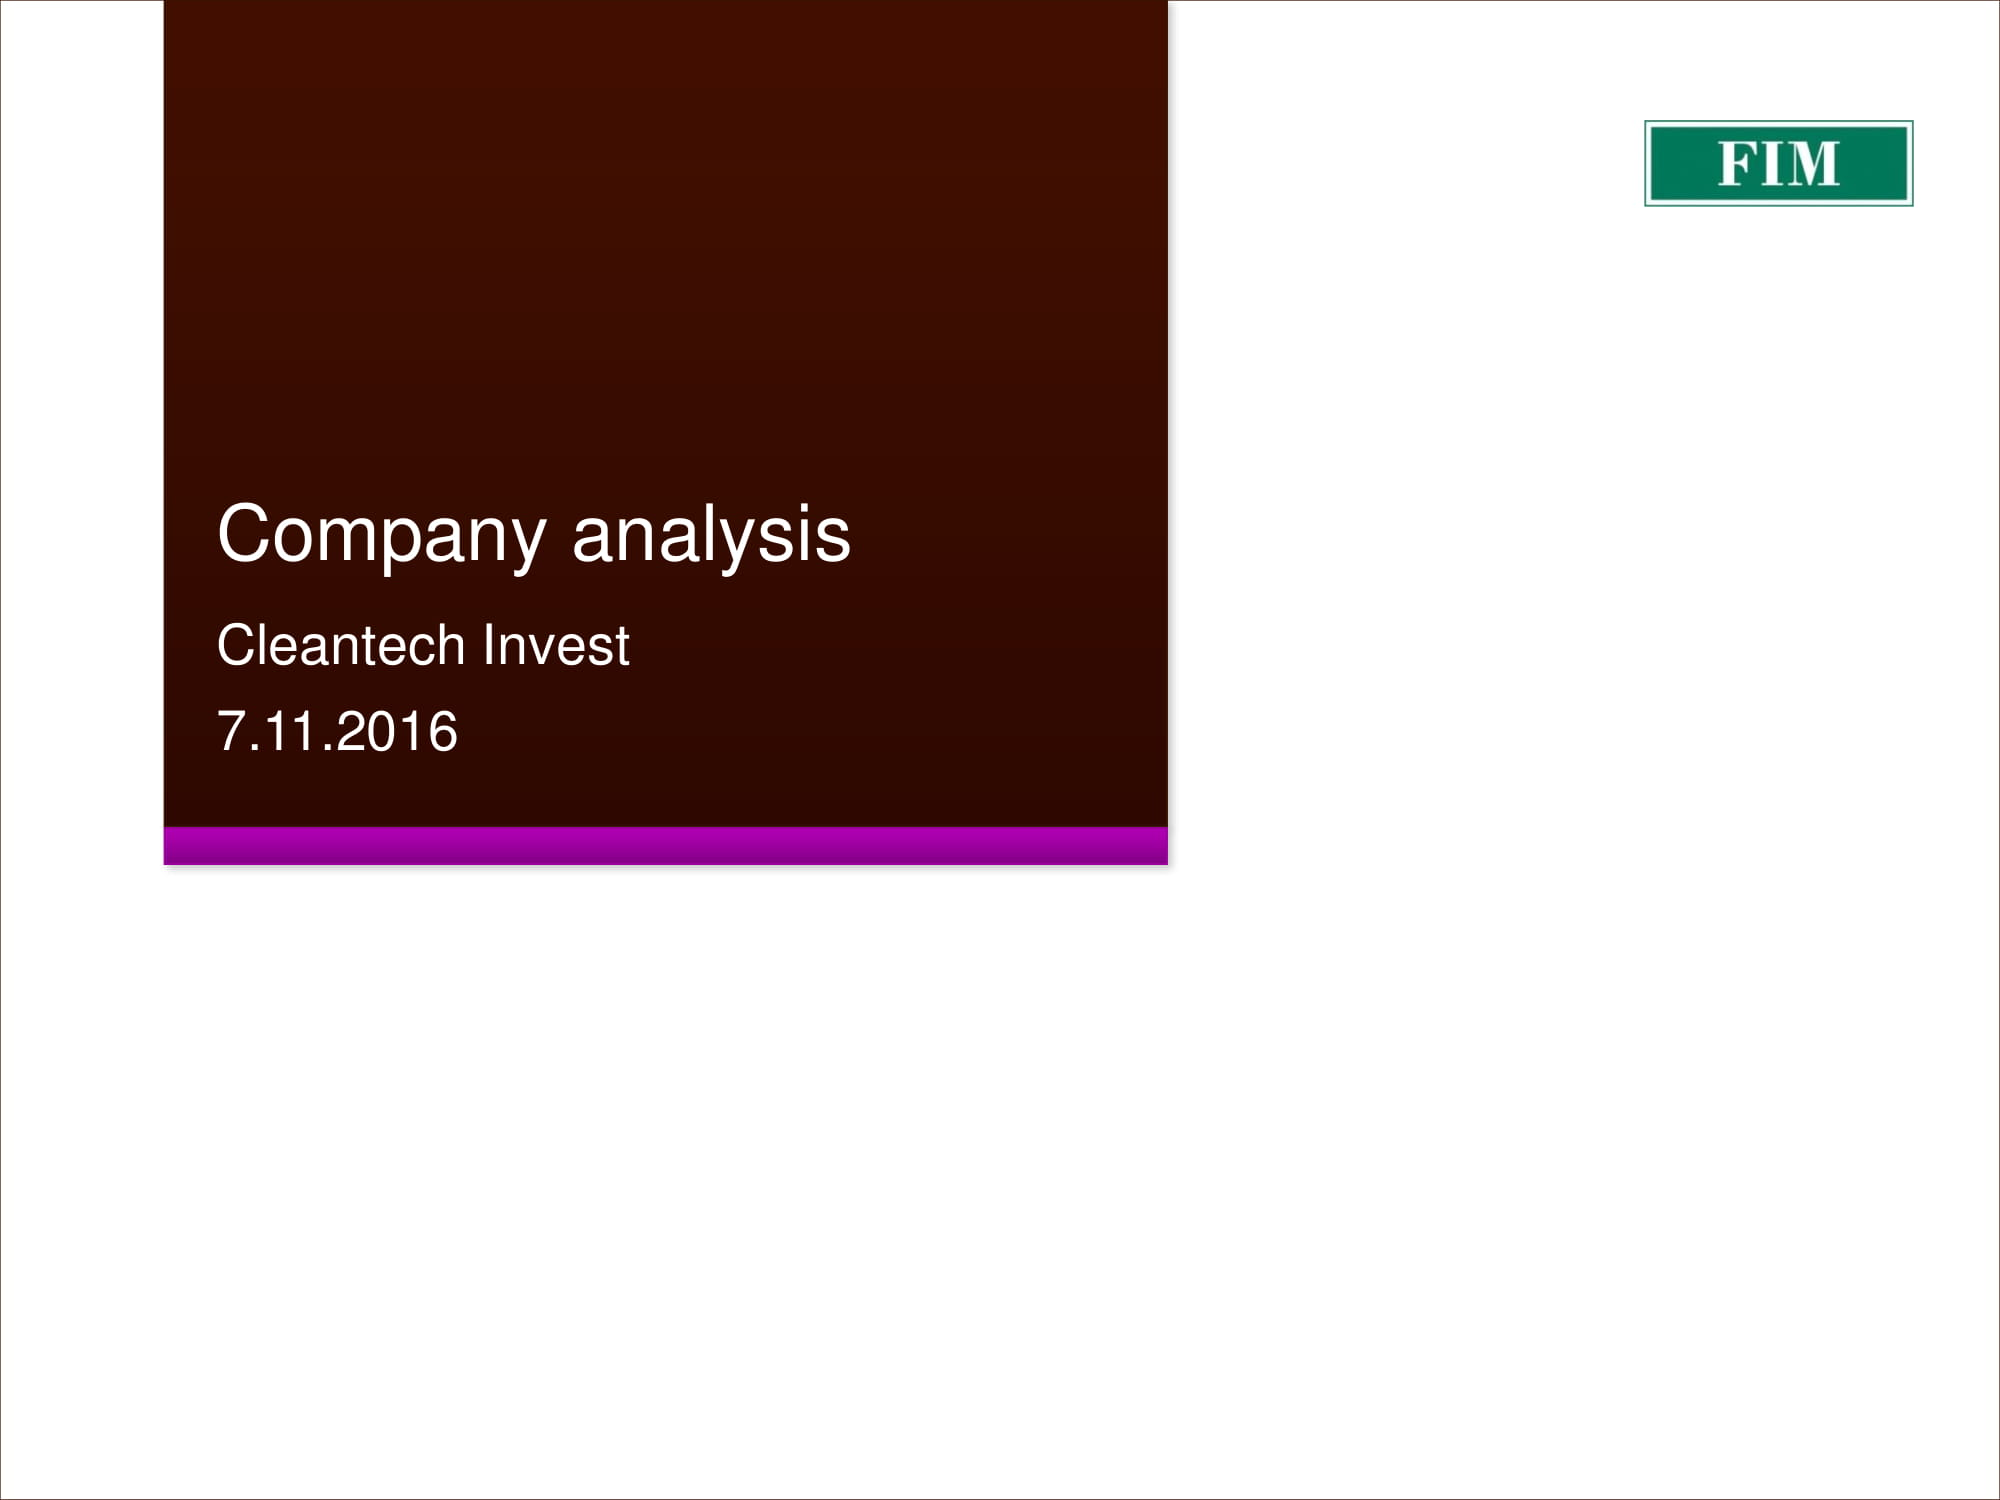 cleantech invest company analysis example